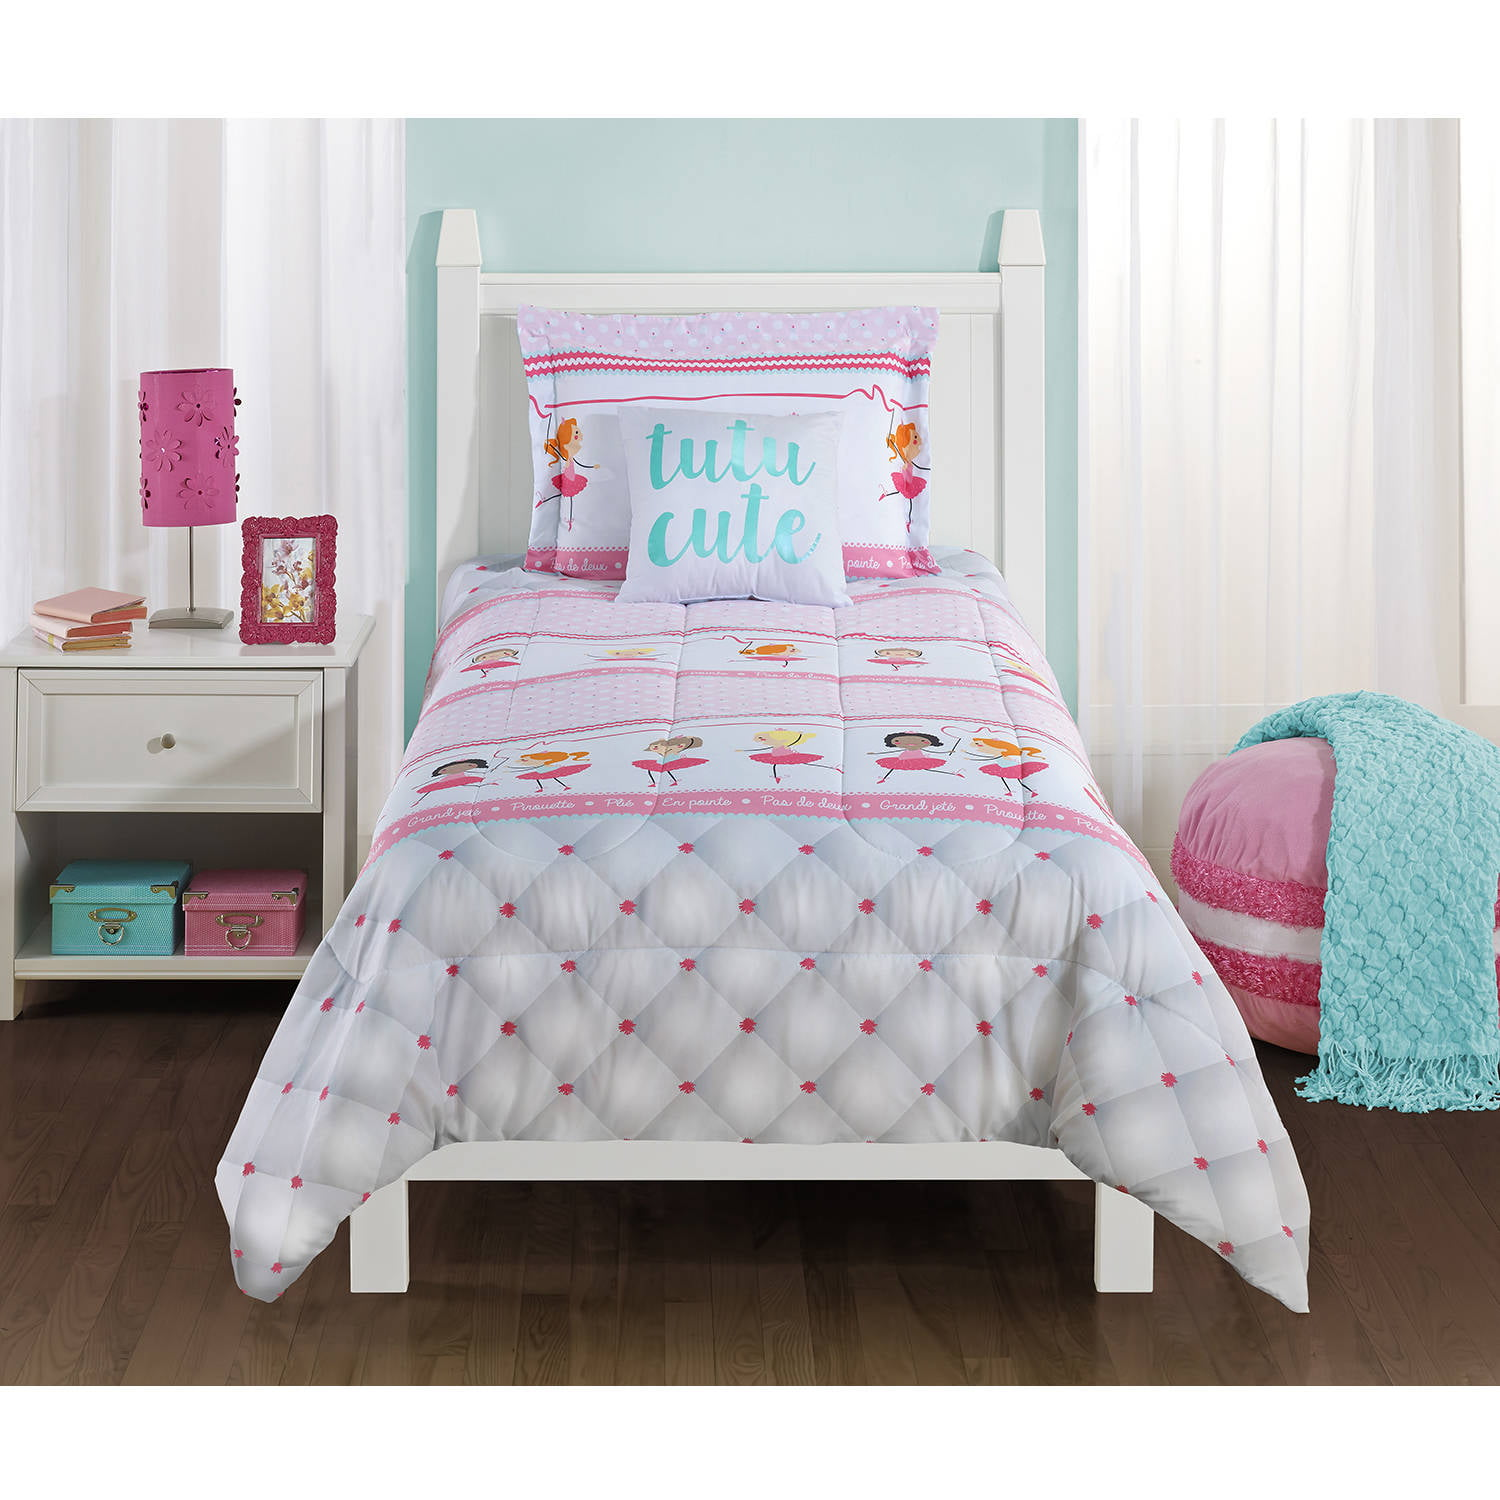 Bed rest pillow walmart - Kids Bedding